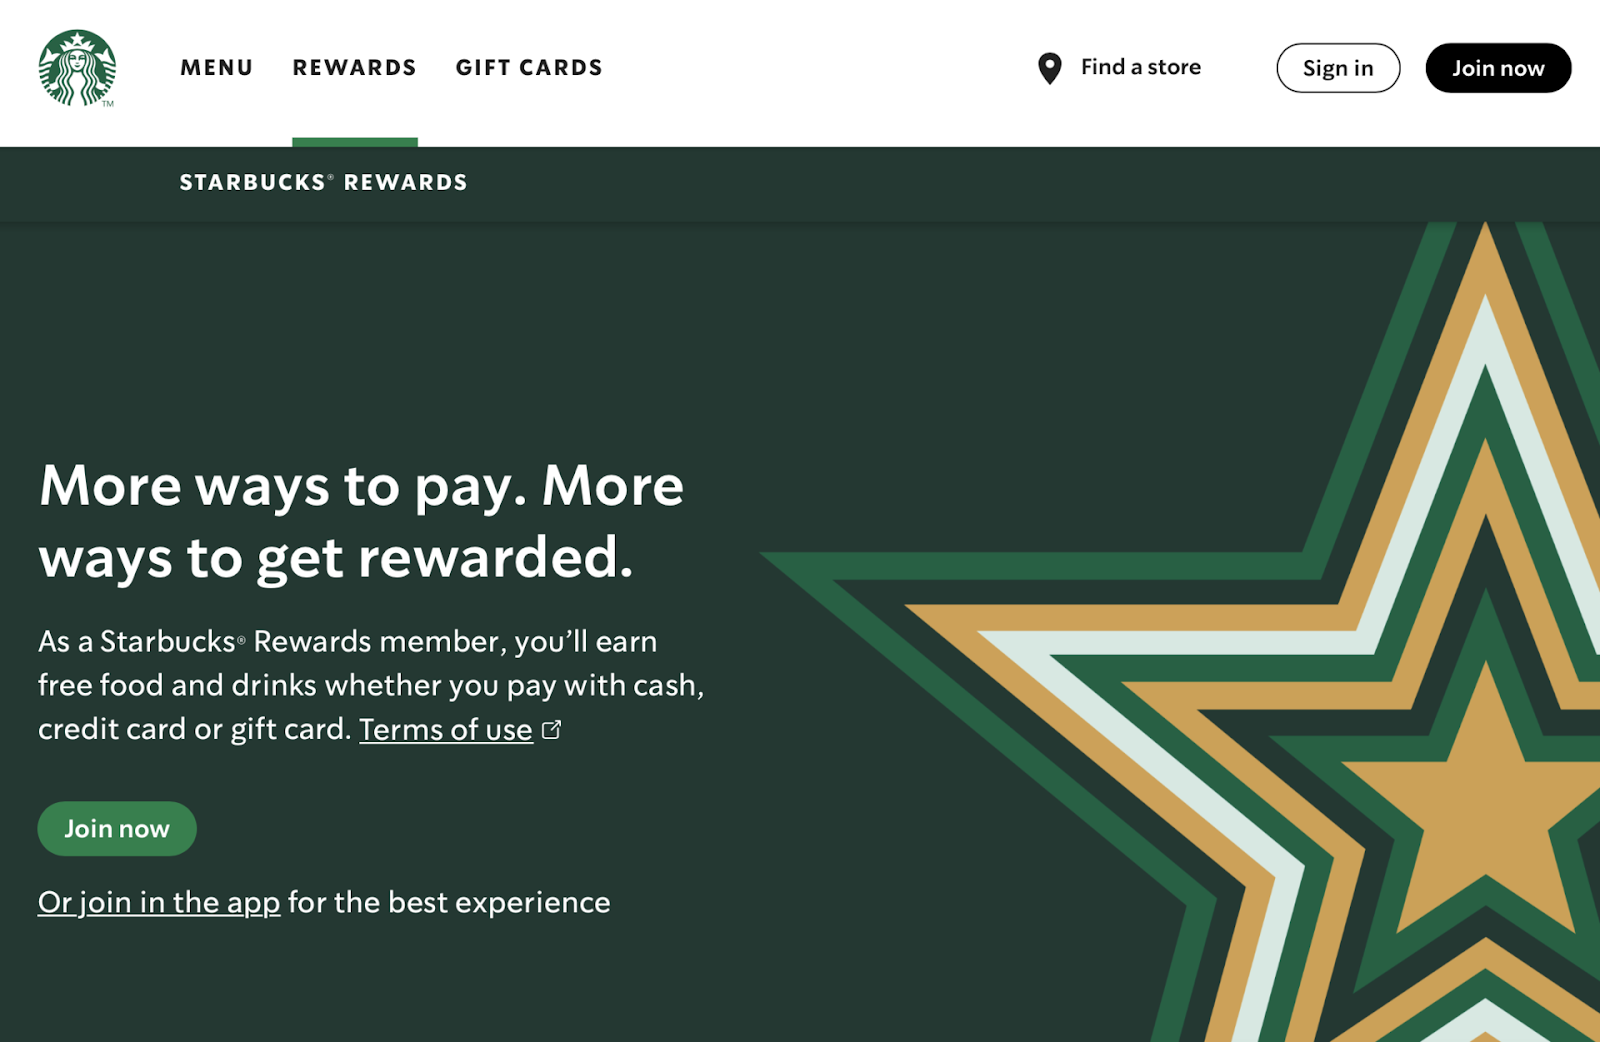 Coming Back for More: How to Build a Great Restaurant's Loyalty Program